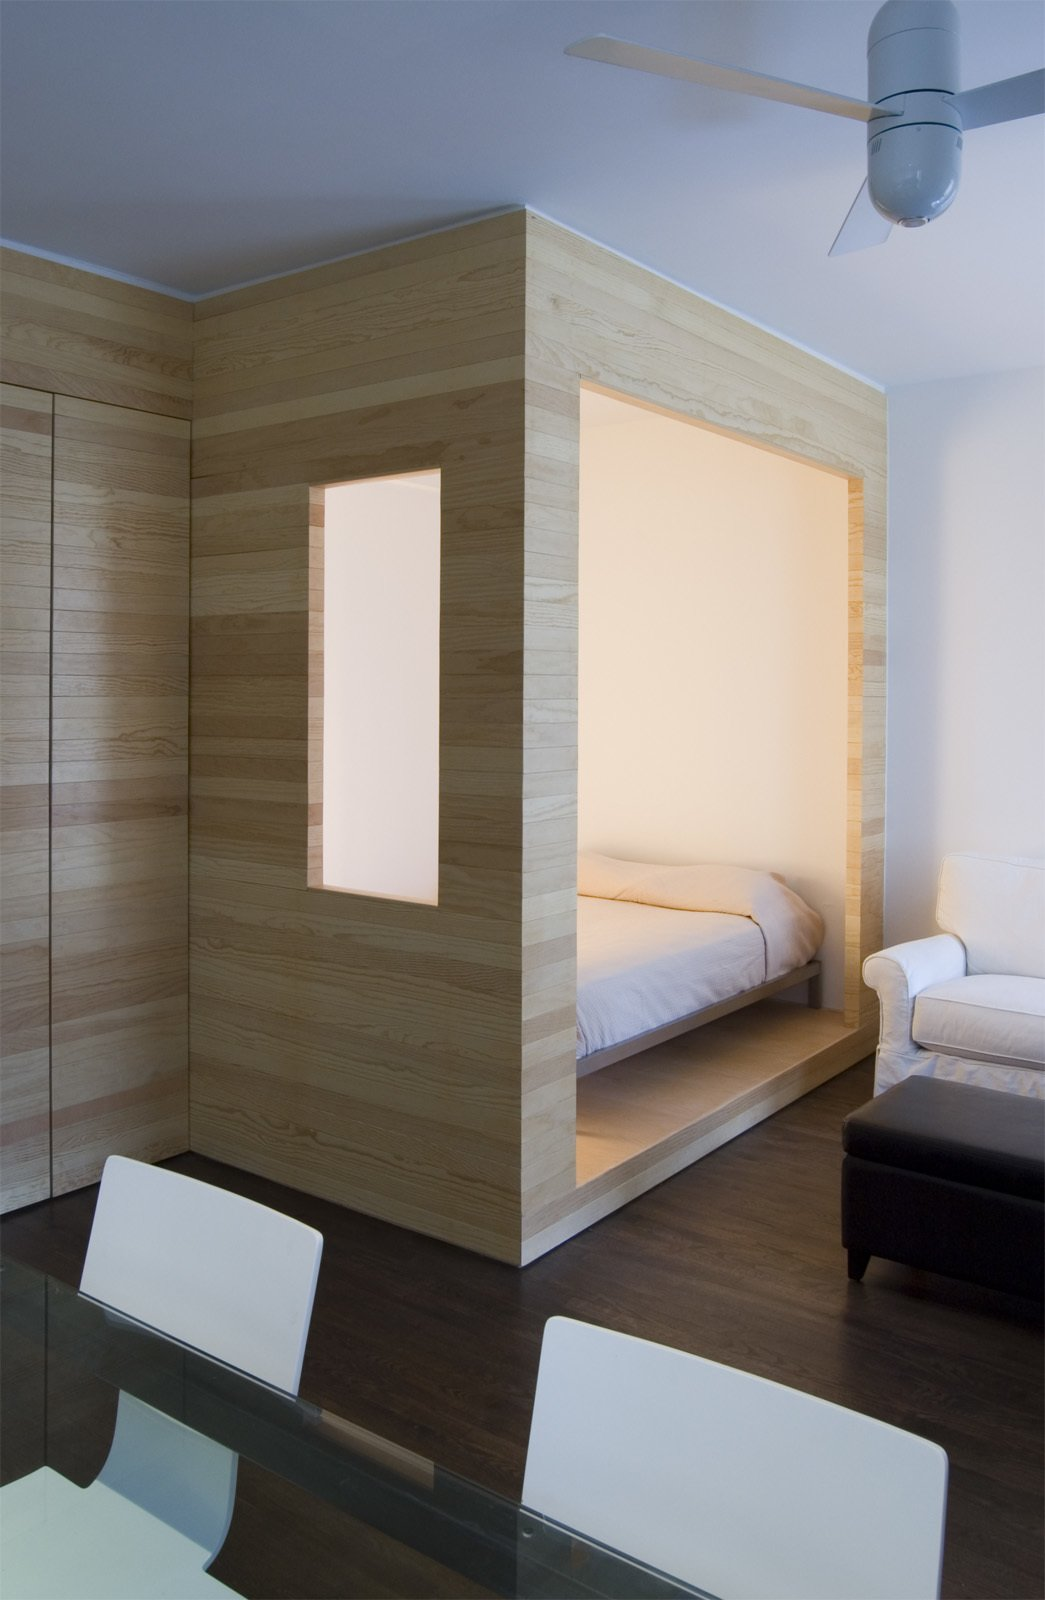 At the opposite end of the studio, Framework Architecture created a partially enclosed sleeping nook that is spacious enough to fit a full-size bed.  Bedroom by Rial Smith from A Tiny Brooklyn Studio Apartment Organized by a Smart Storage Wall